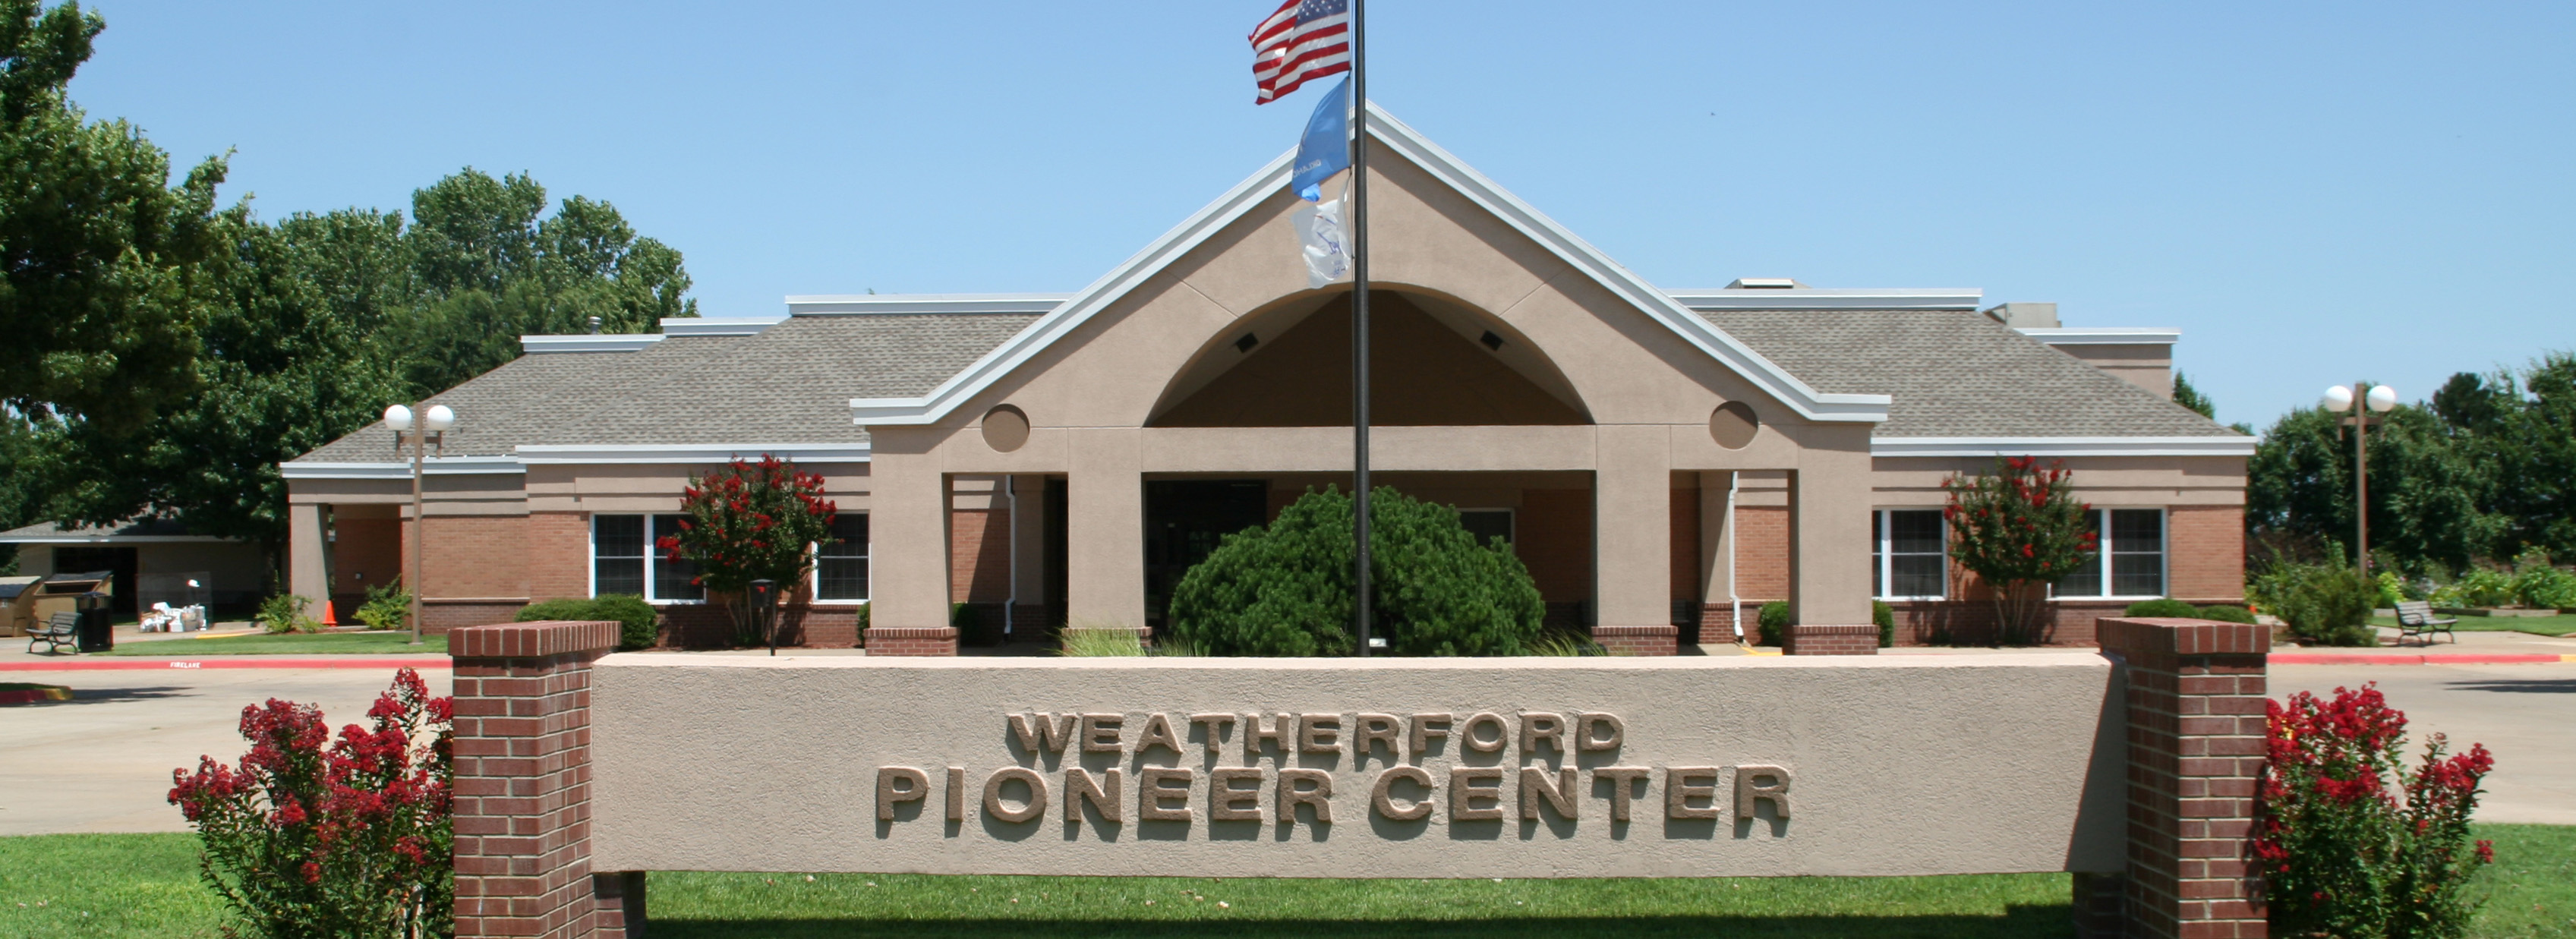 front view of the Pioneer Center